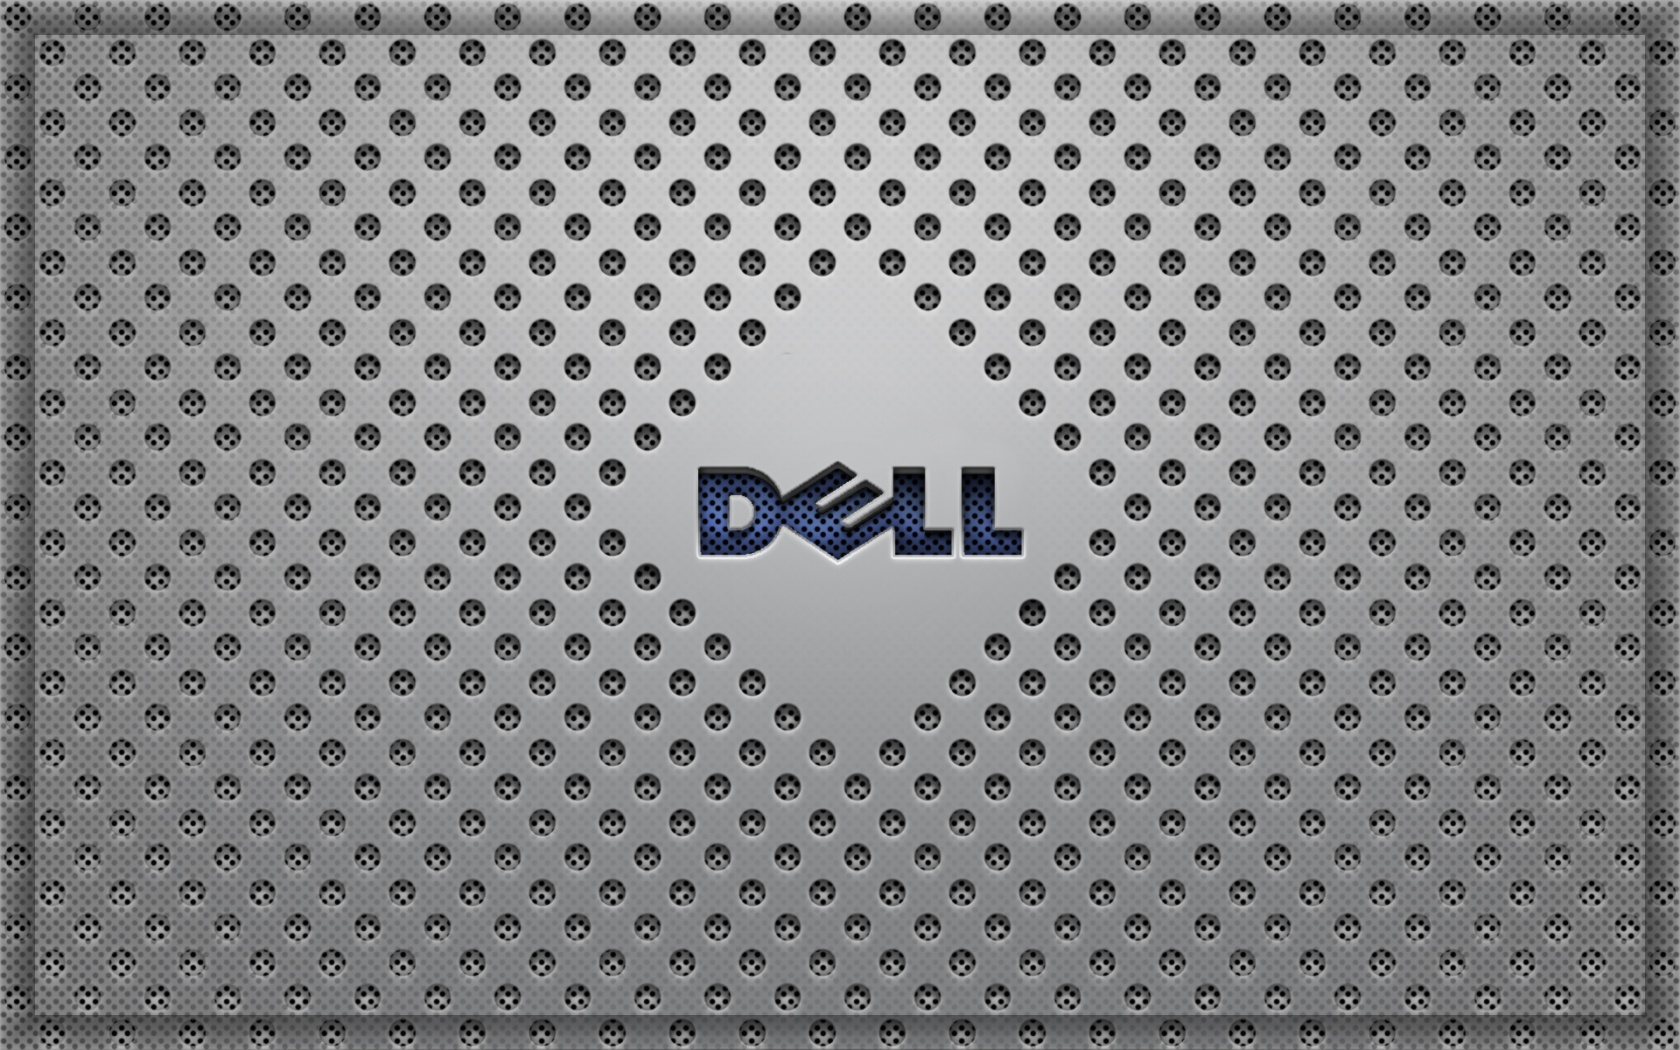 Dell Wallpapers 1680x1050 632201